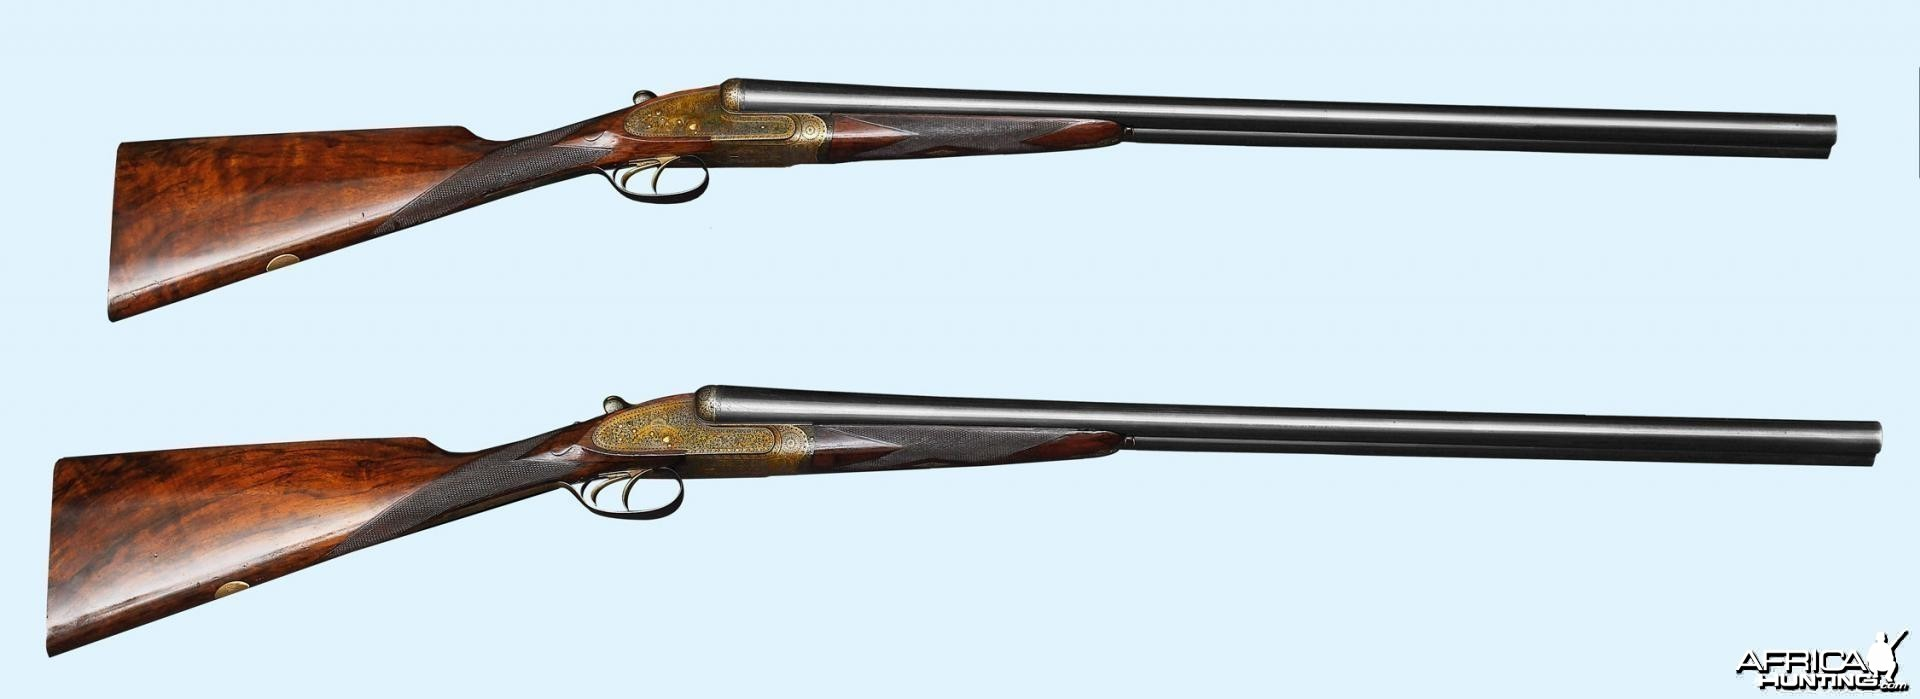 Custom Pair of 12 Gauge Holland & Holland Shotguns